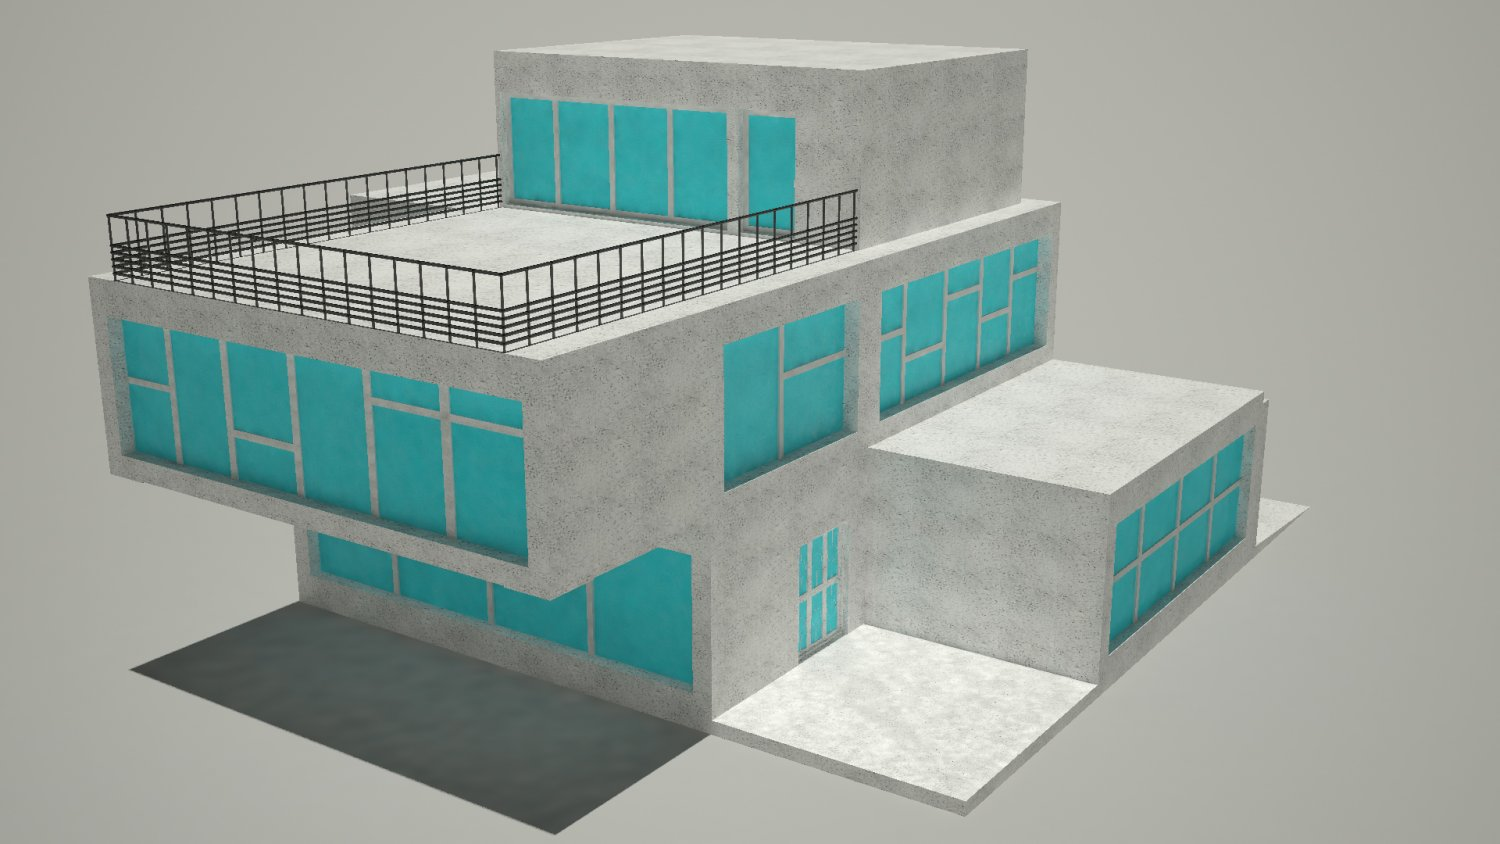 Simple house free 3d model in buildings 3dexport